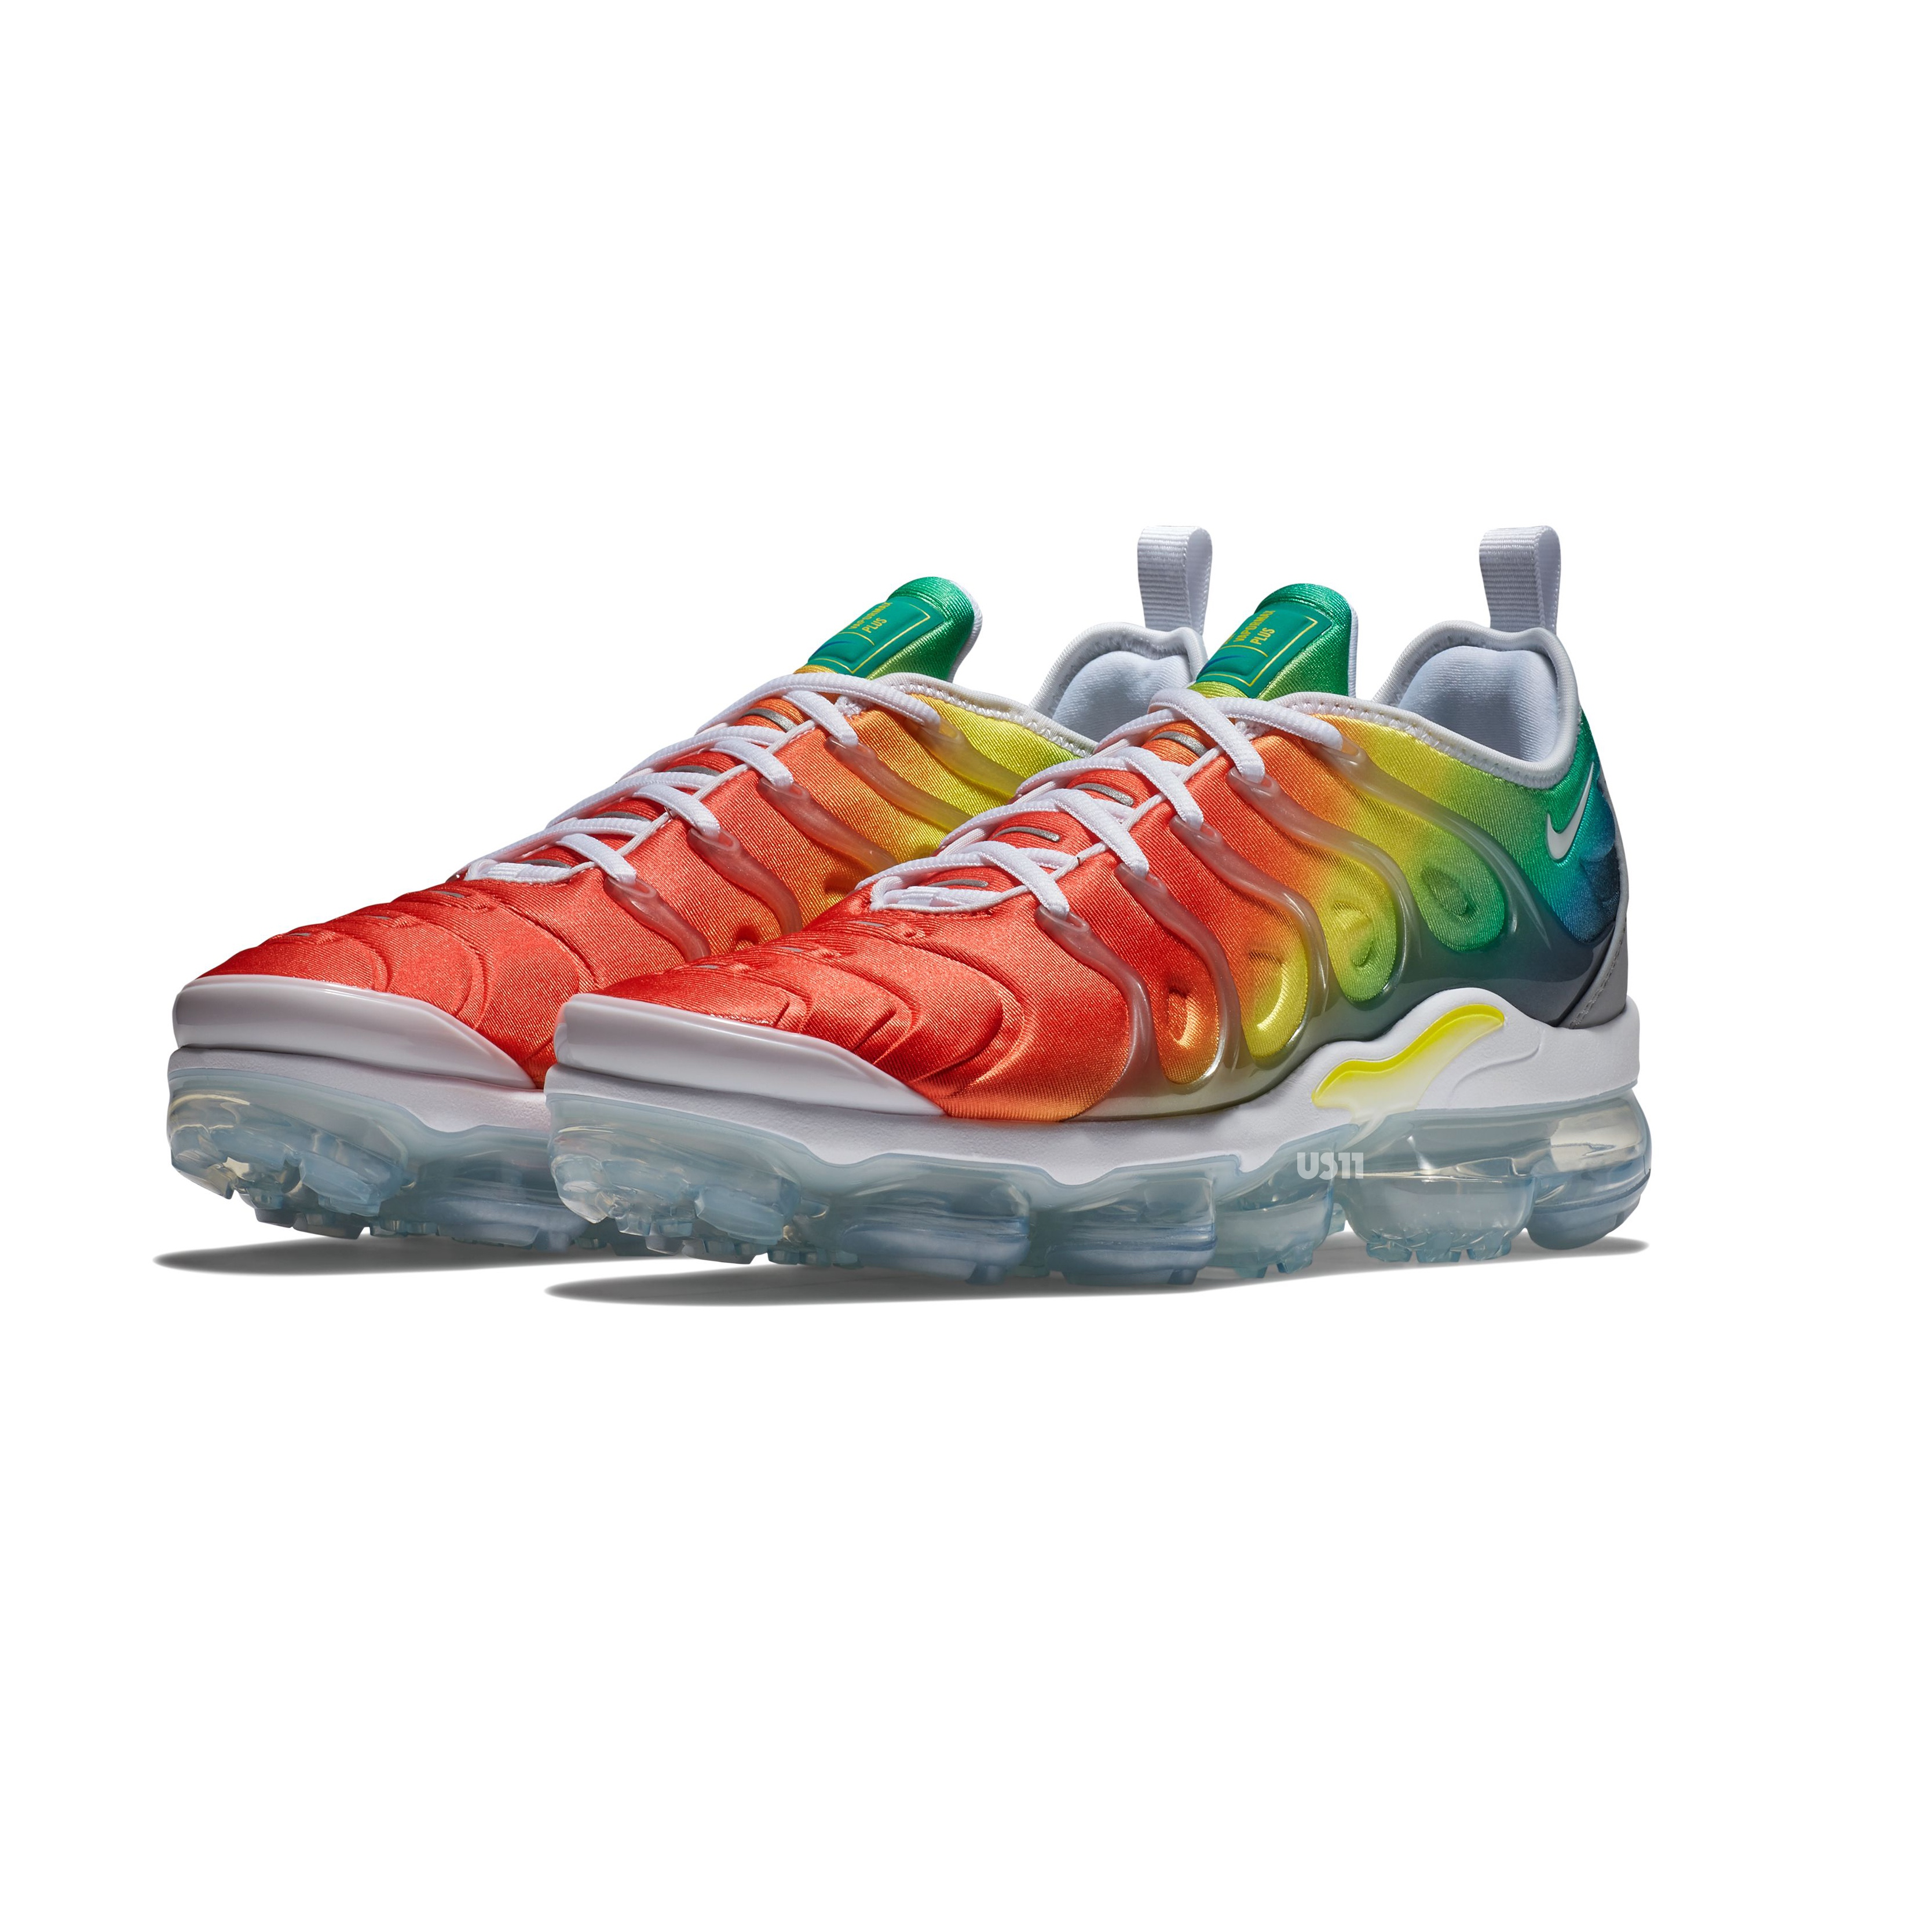 premium selection 593b2 c1045 Look Out For This Rainbow-Themed Nike Air VaporMax Plus ...